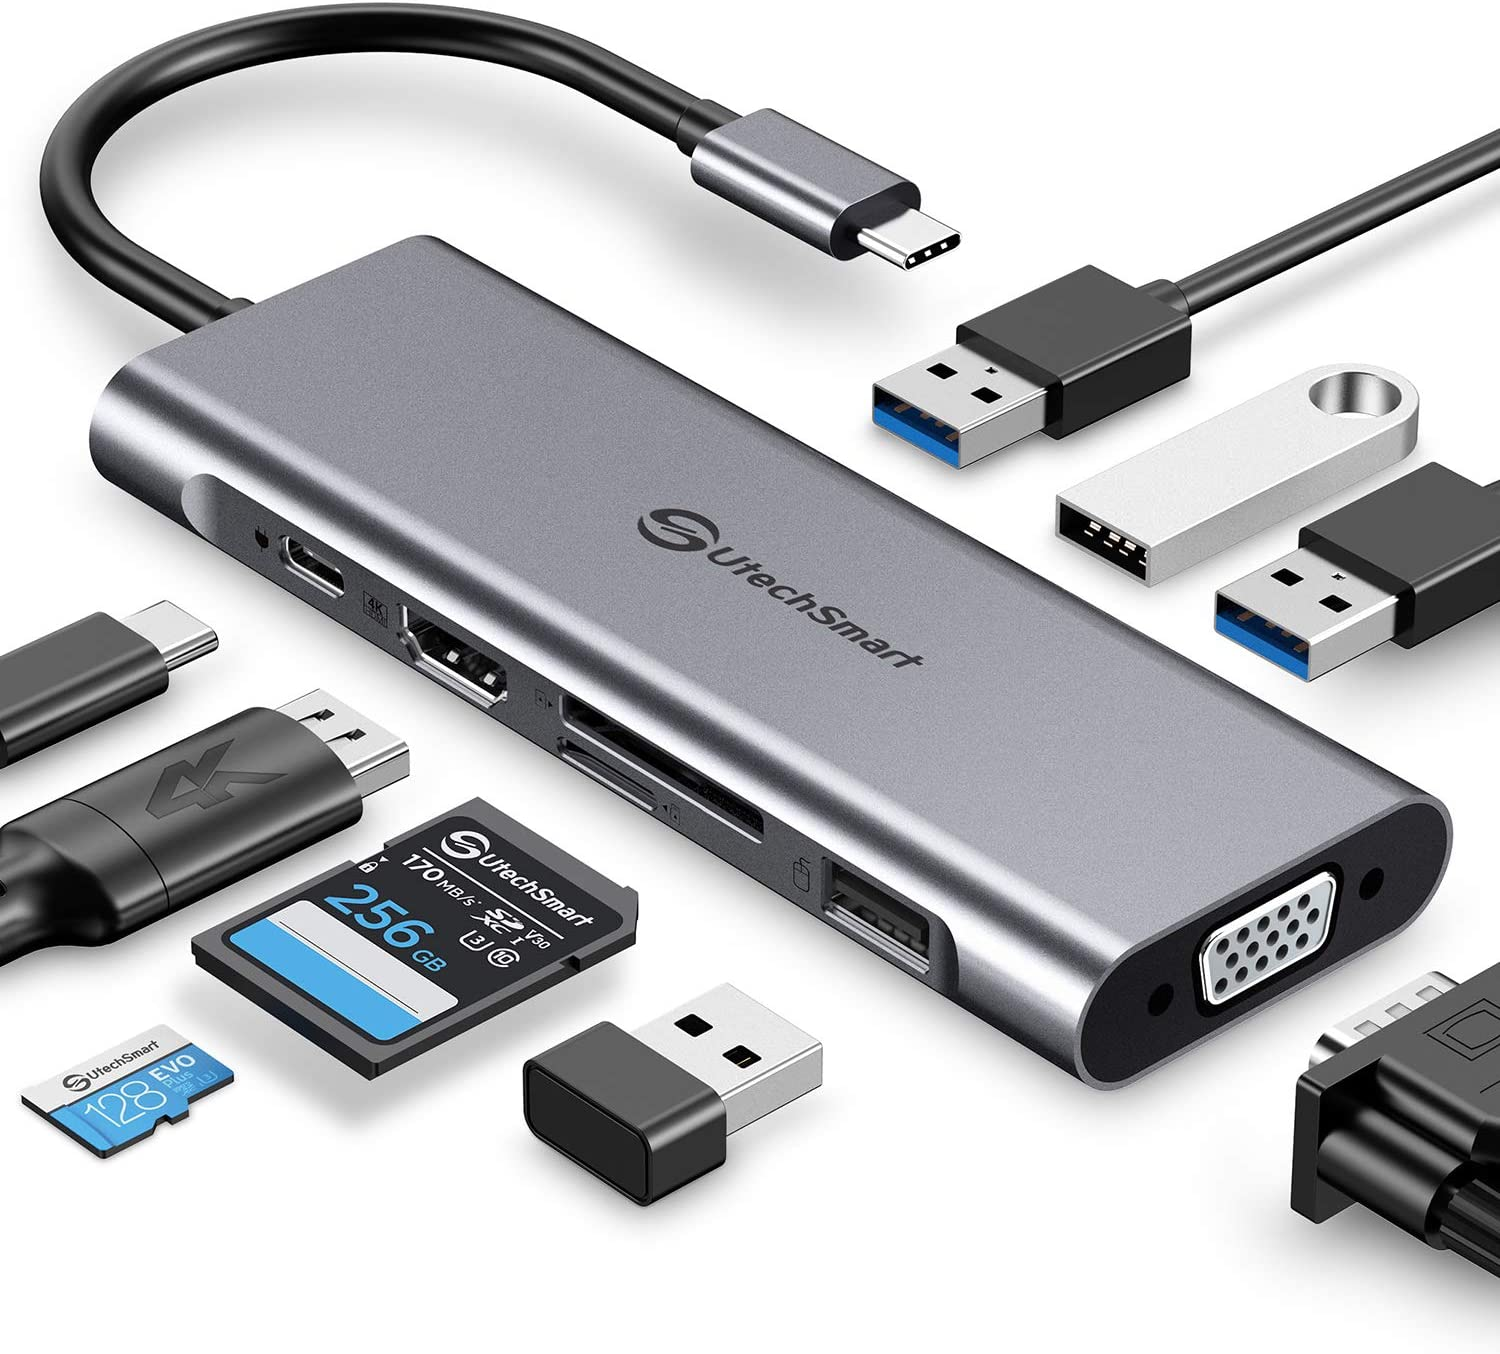 UtechSmart USB Shipping included C Hub Dock Display in1 Triple We OFFer at cheap prices 9